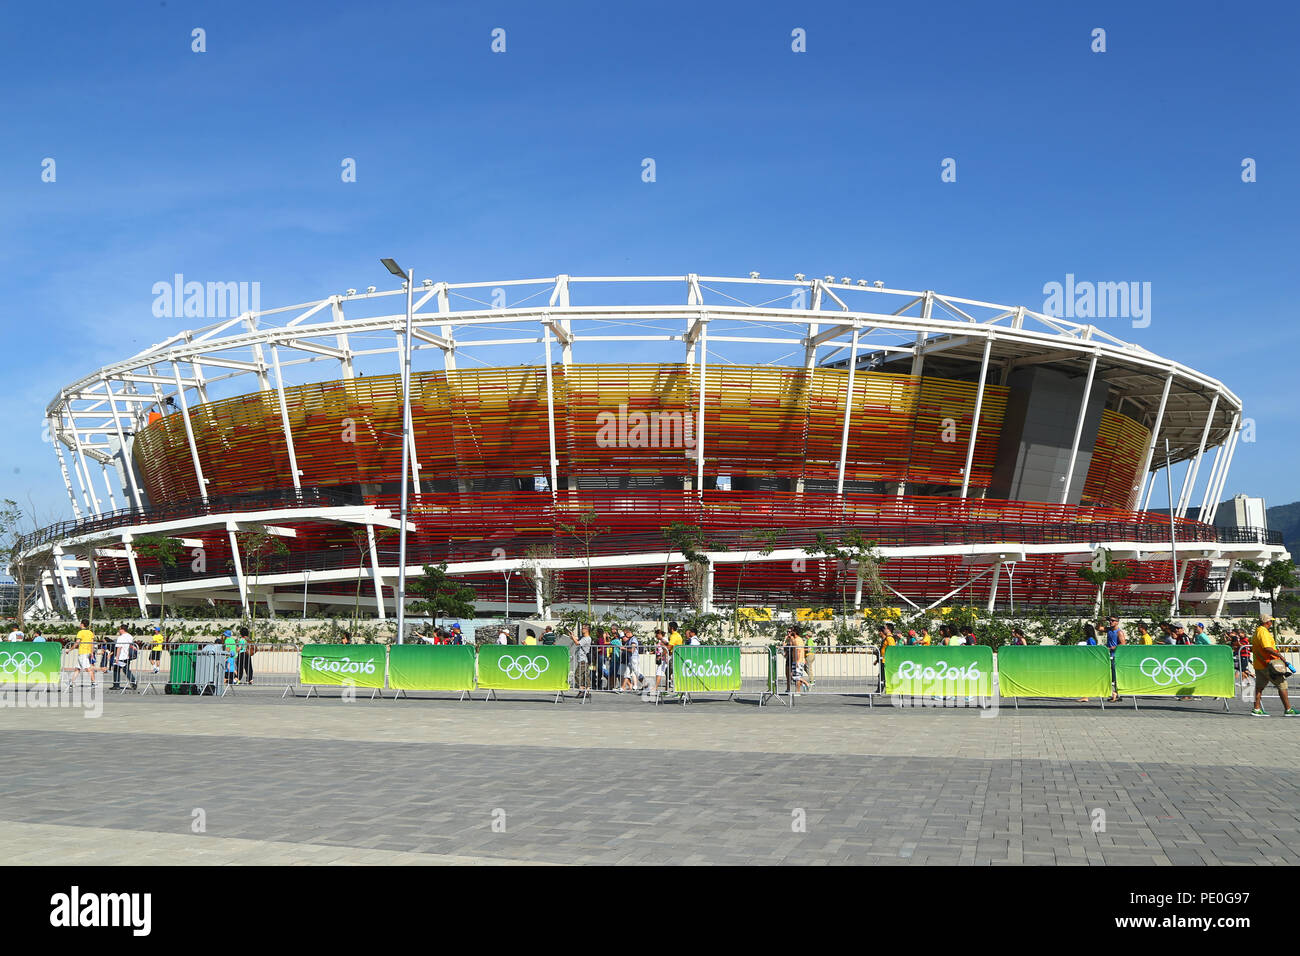 Main tennis venue Maria Esther Bueno Court of the Rio 2016 Olympic Games at the Olympic Tennis Centre Stock Photo